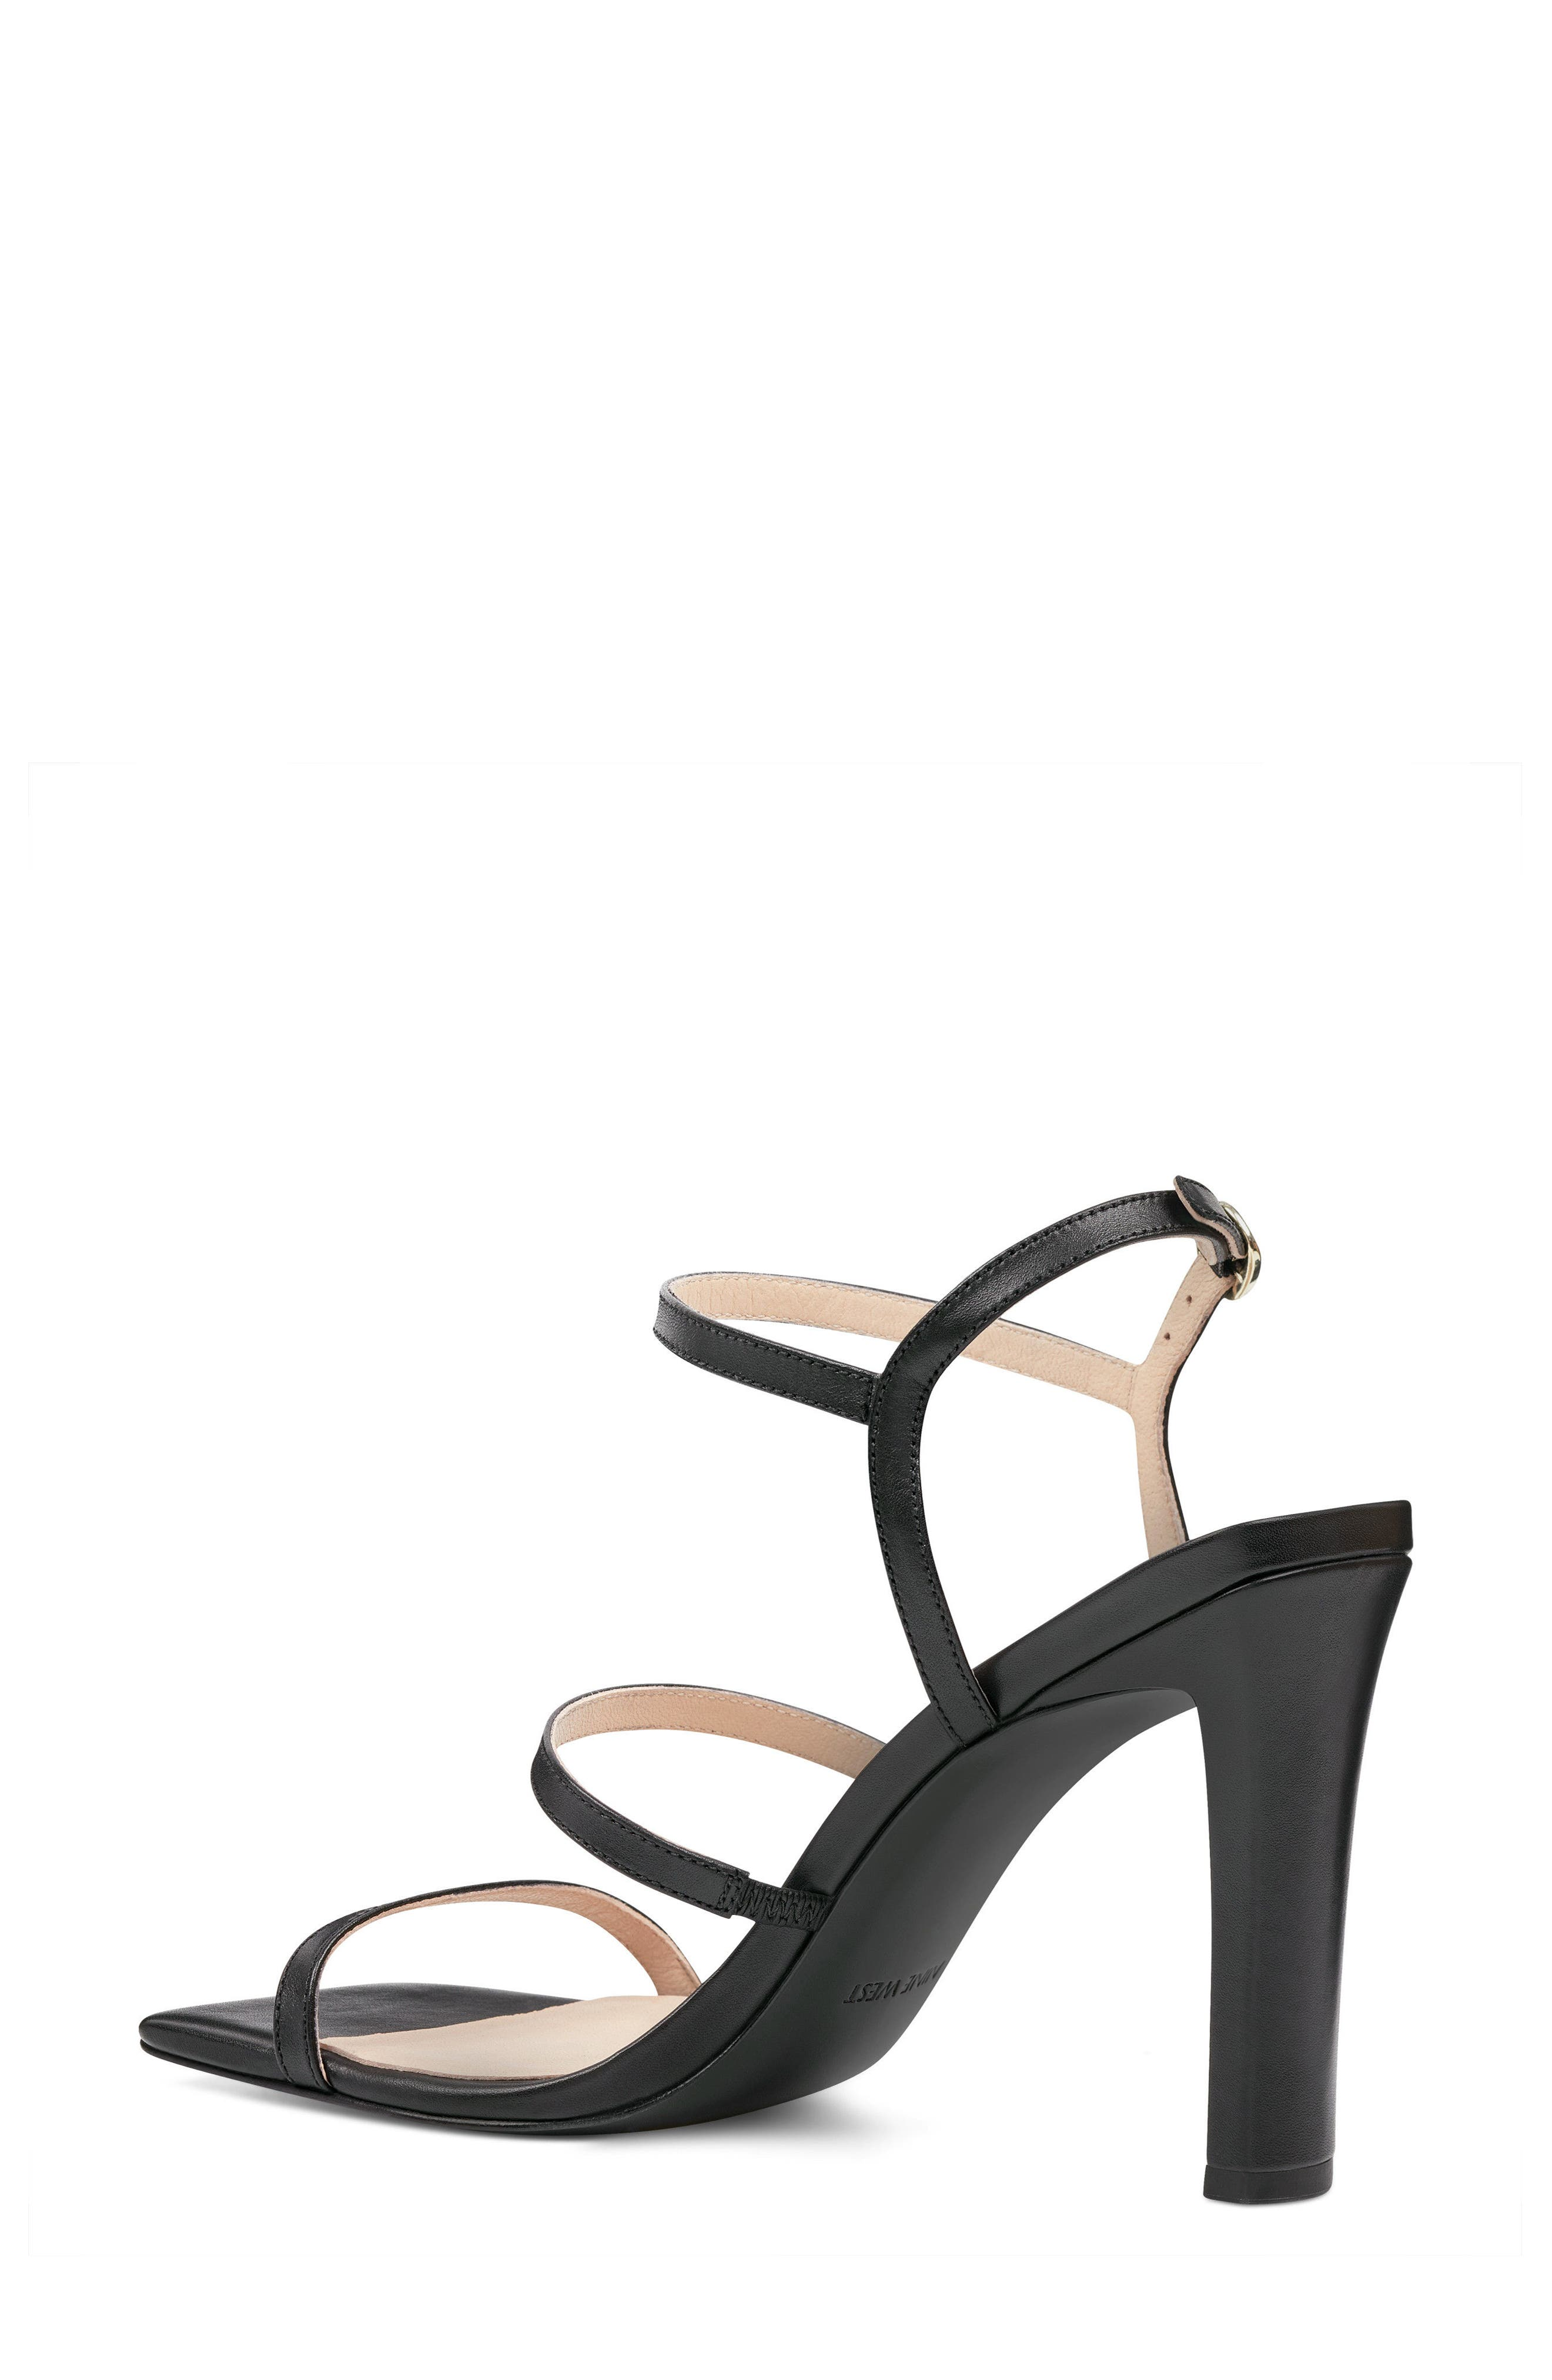 Gabelle - 40th Anniversary Capsule Collection Sandal,                             Alternate thumbnail 2, color,                             BLACK LEATHER